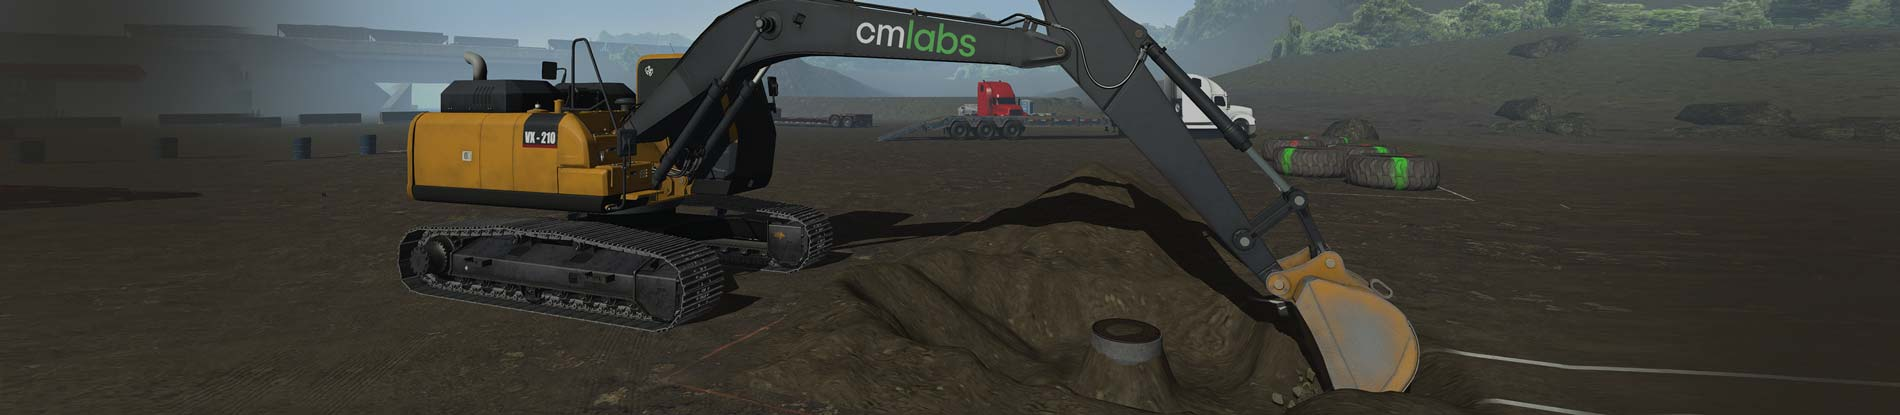 CM labs – Excavator Simulator Training